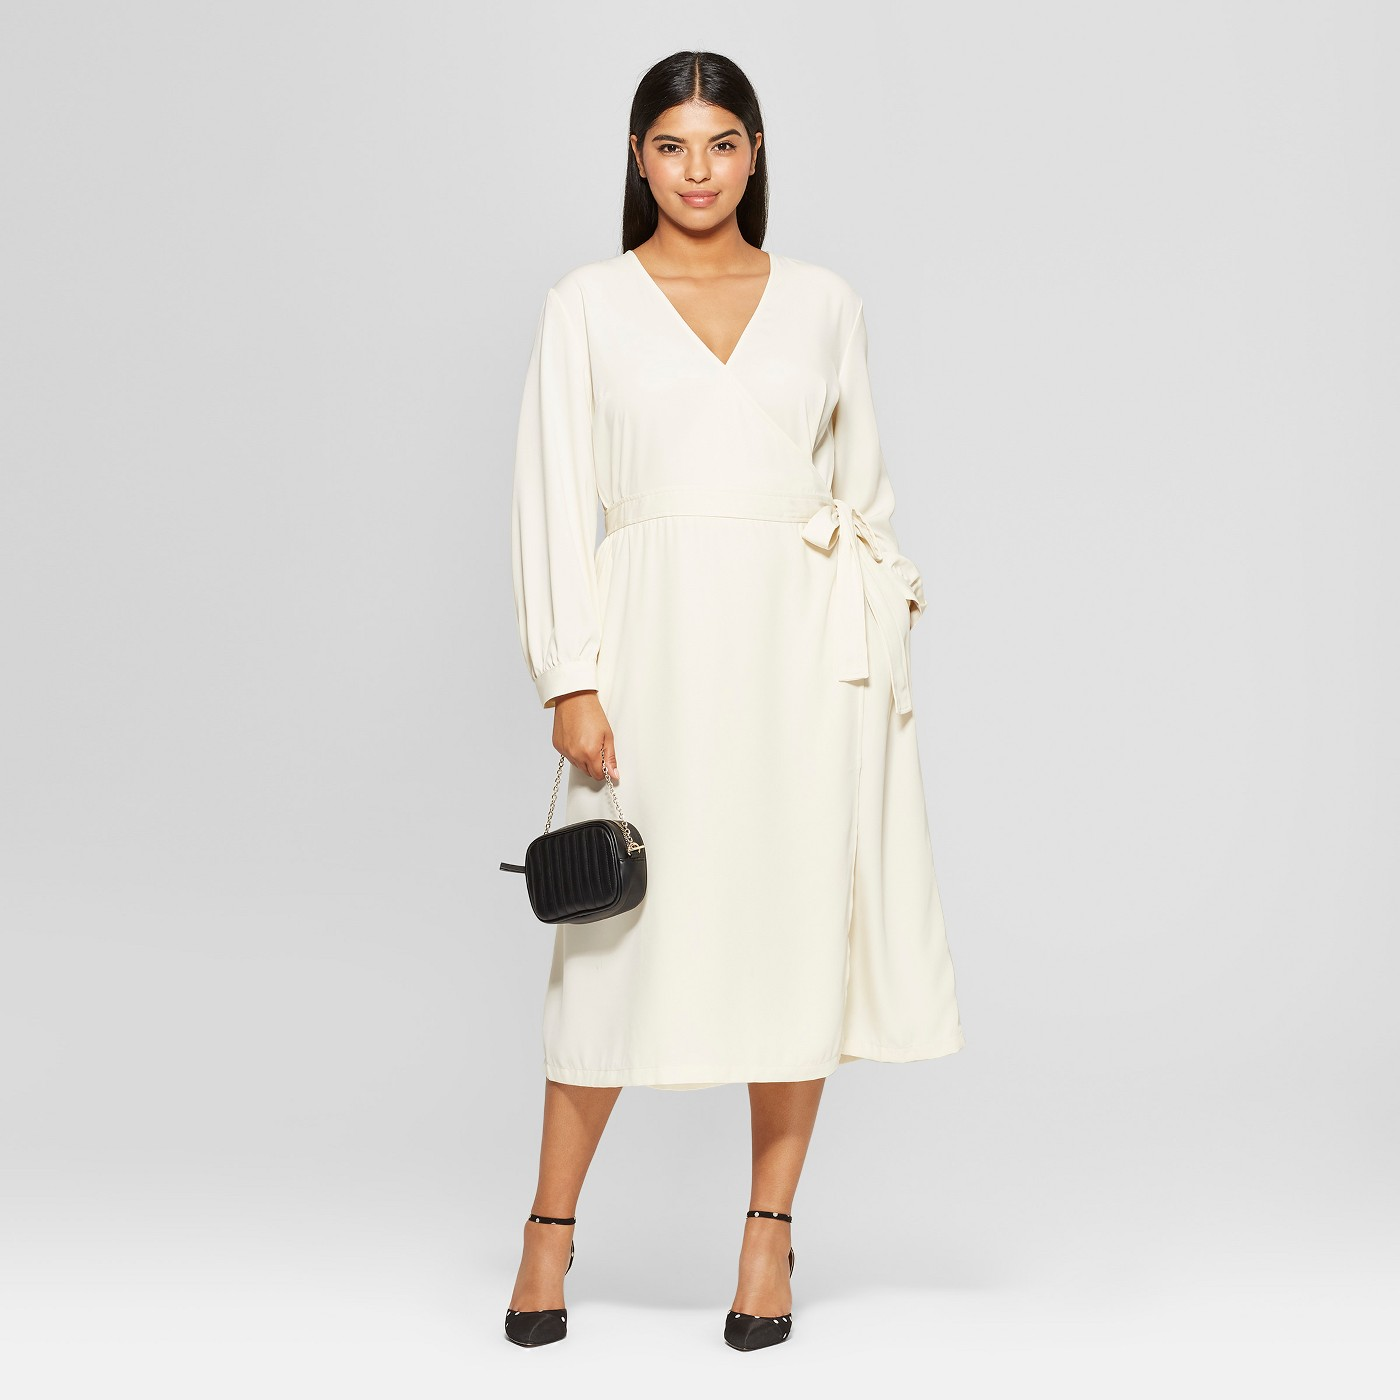 Never Worry About What To Wear To Work Again With These 25 Dresses White Long Sleeve Wrap Dress Long Sleeve Work Dress Long Sleeve Wrap Dress [ 1400 x 1400 Pixel ]